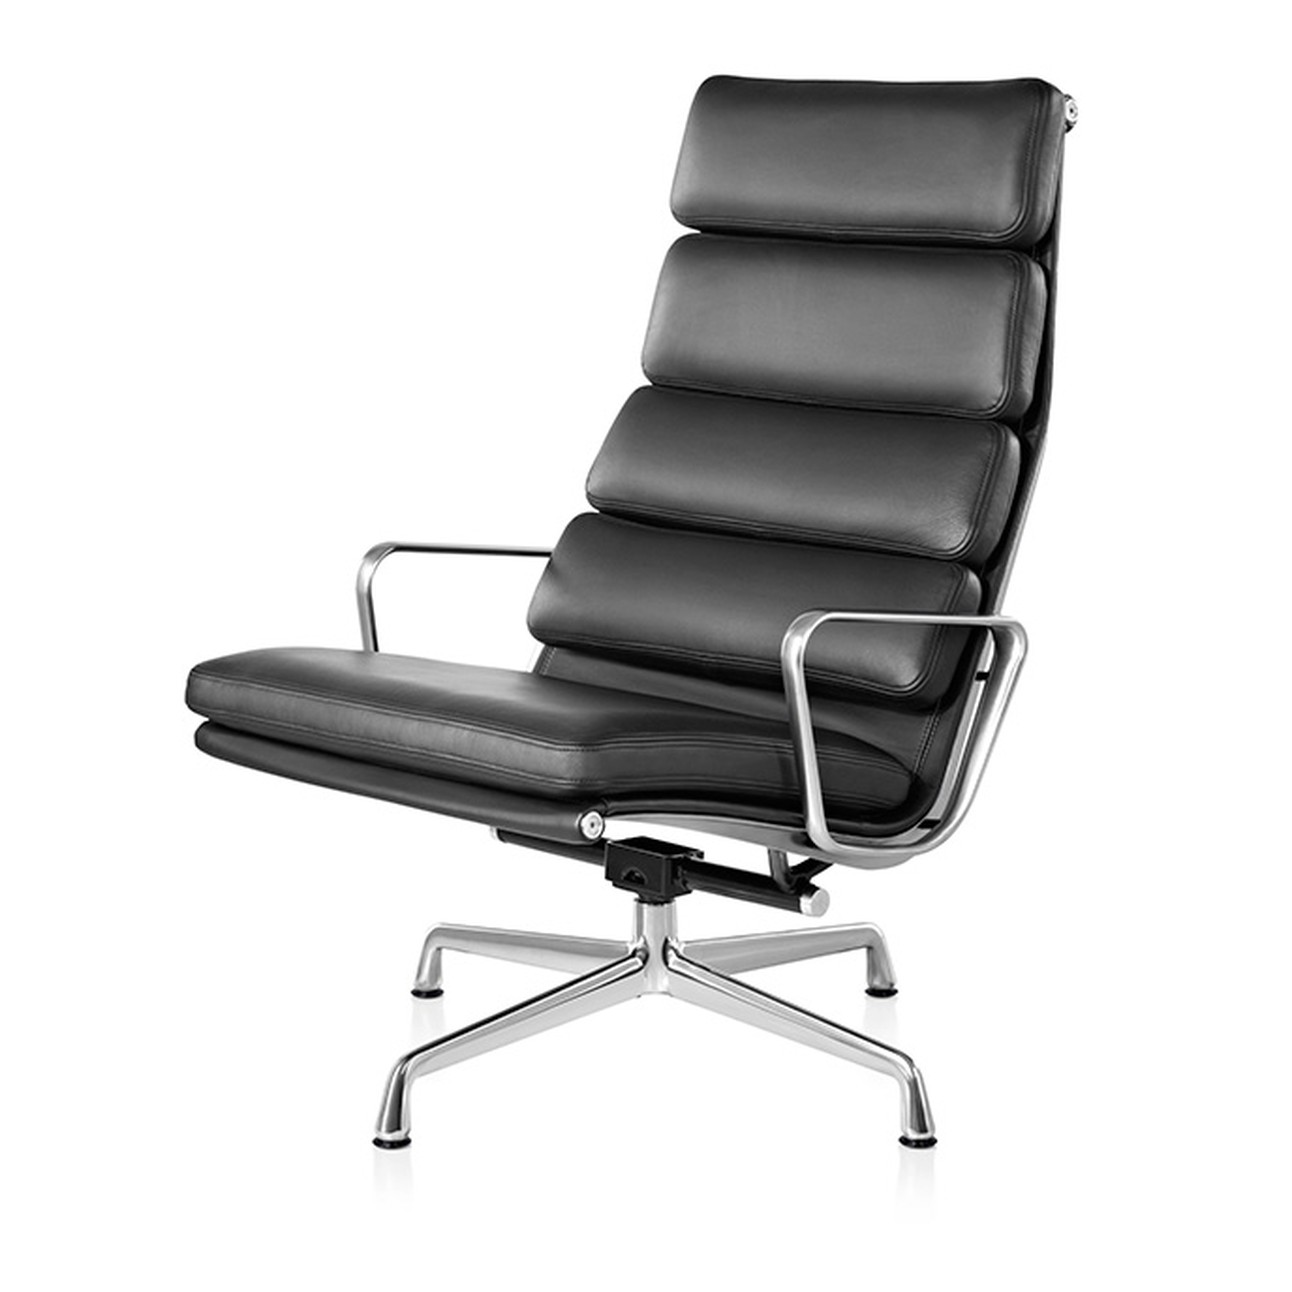 Eames Aluminum Group Soft Pad Lounge Chair Graphite Leather